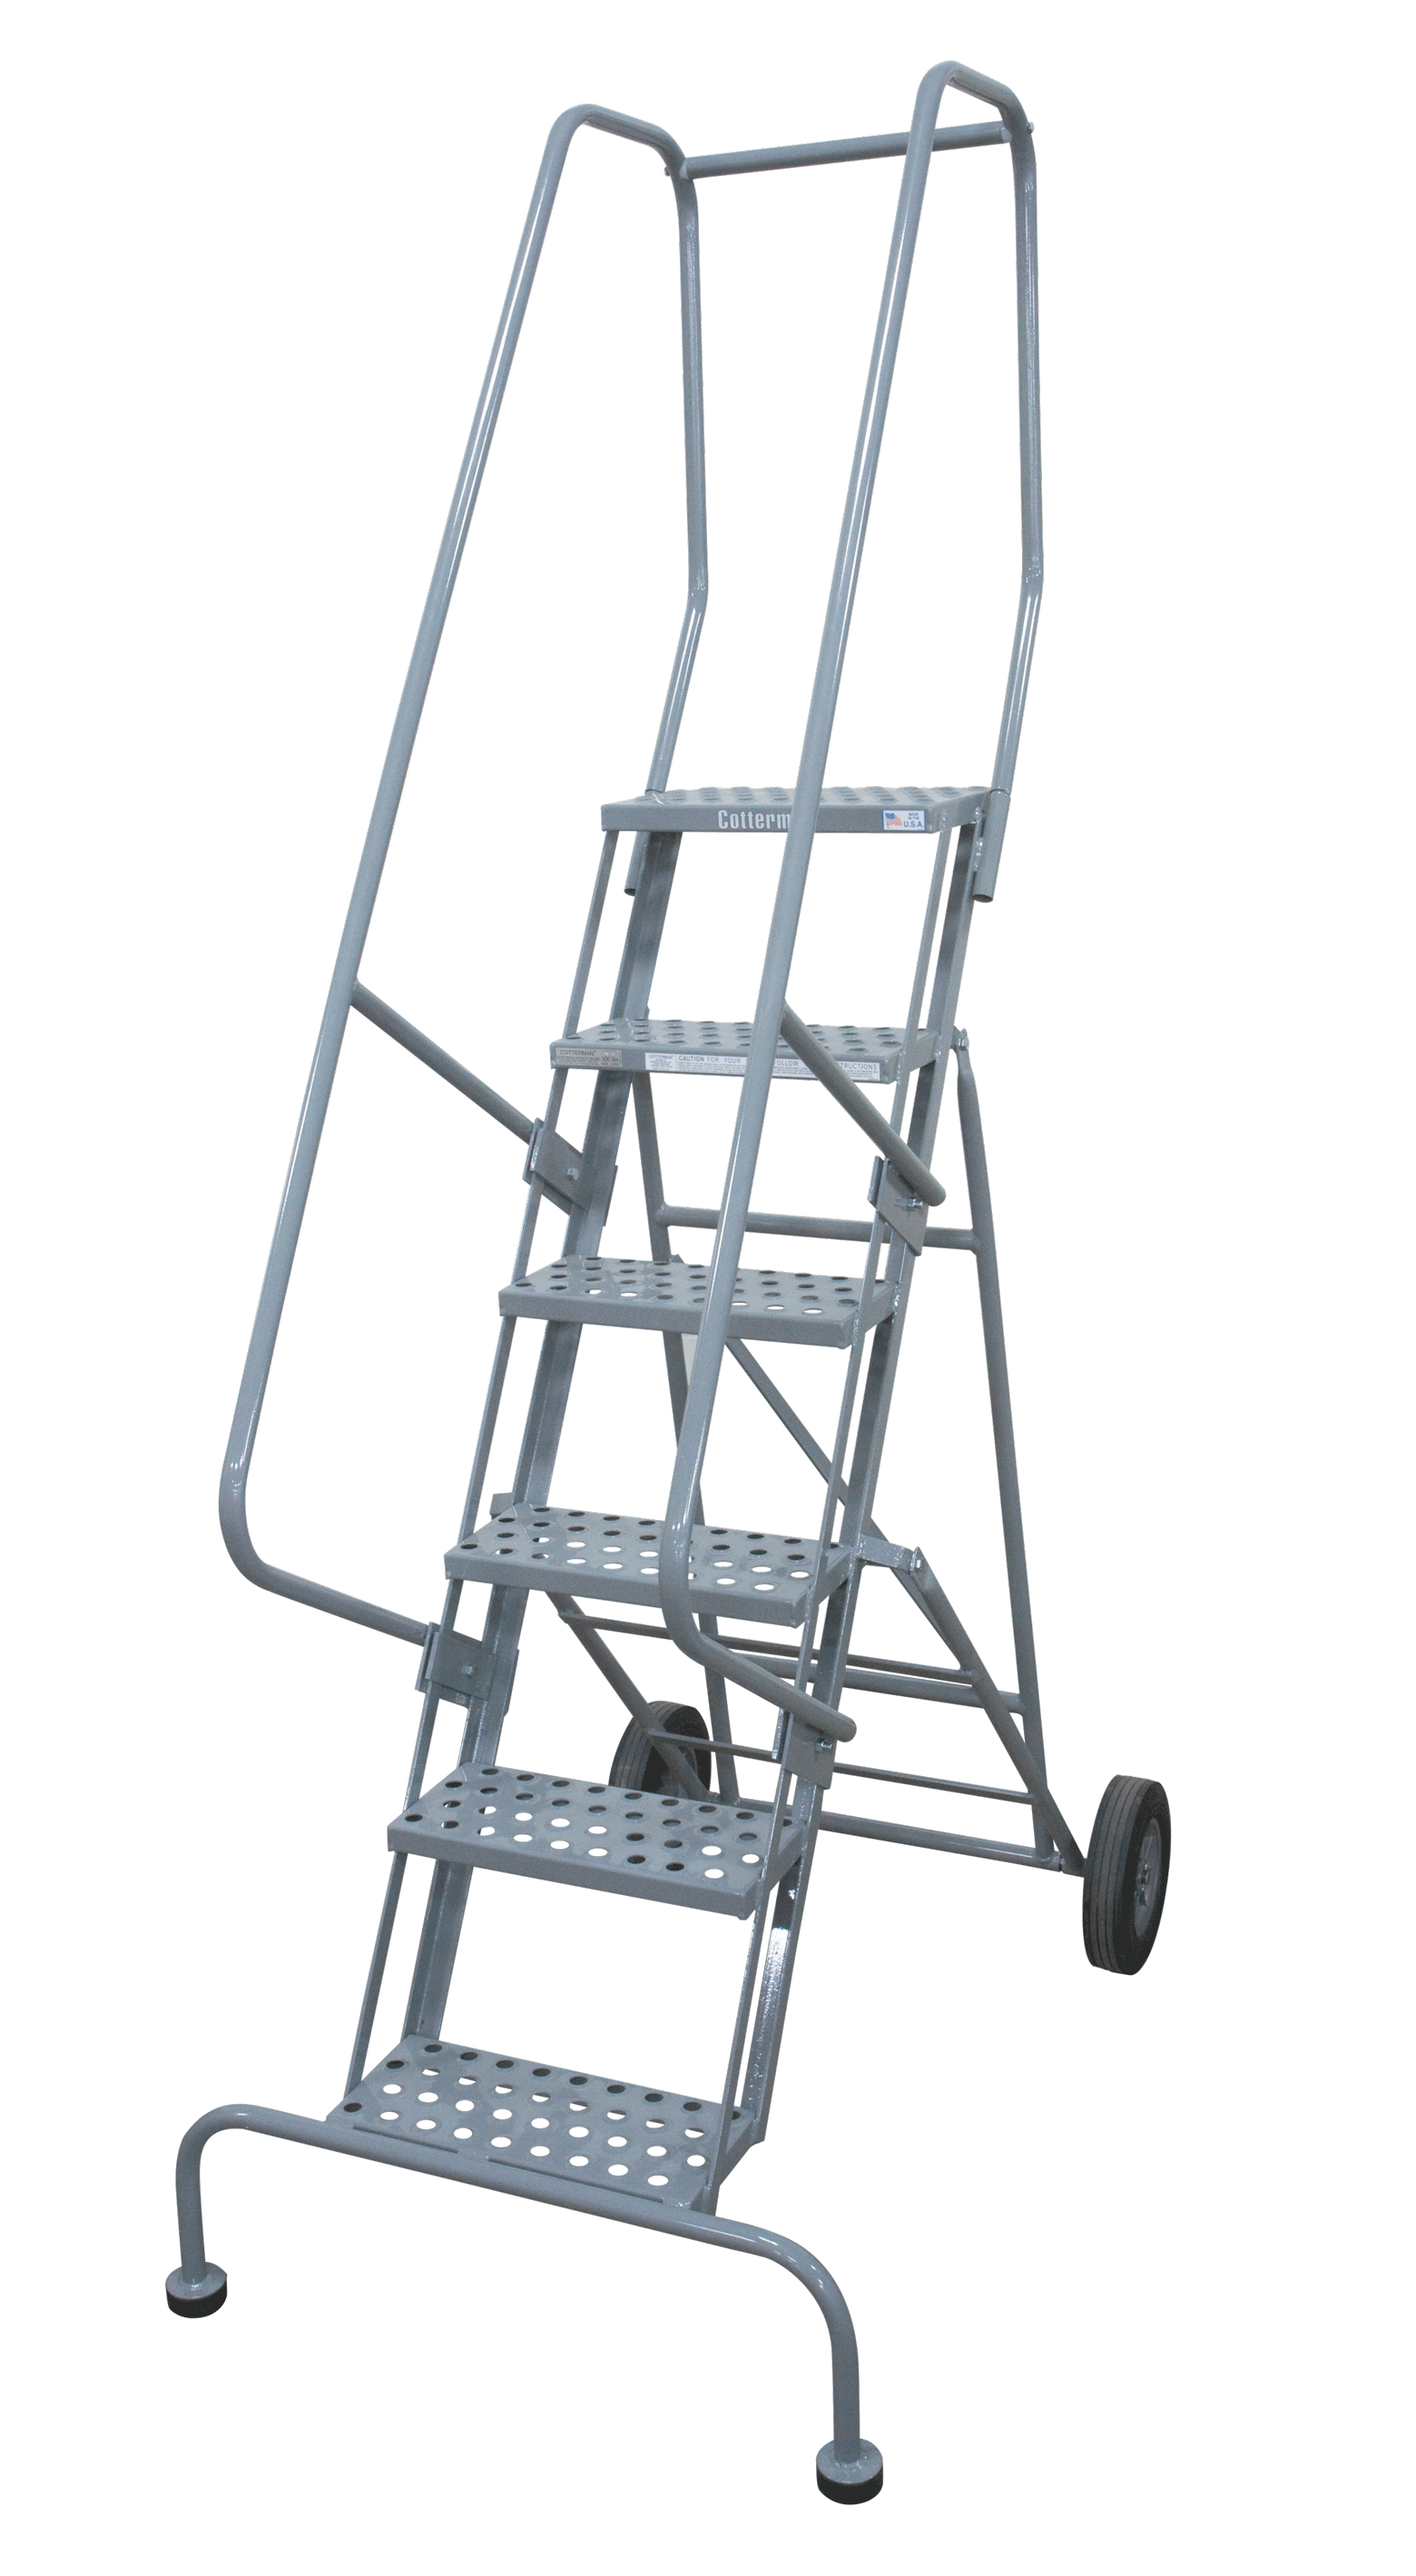 Climbing Ladder Png Climbing Ladder Png In 2020 Rolling Ladder Ladder Step Treads